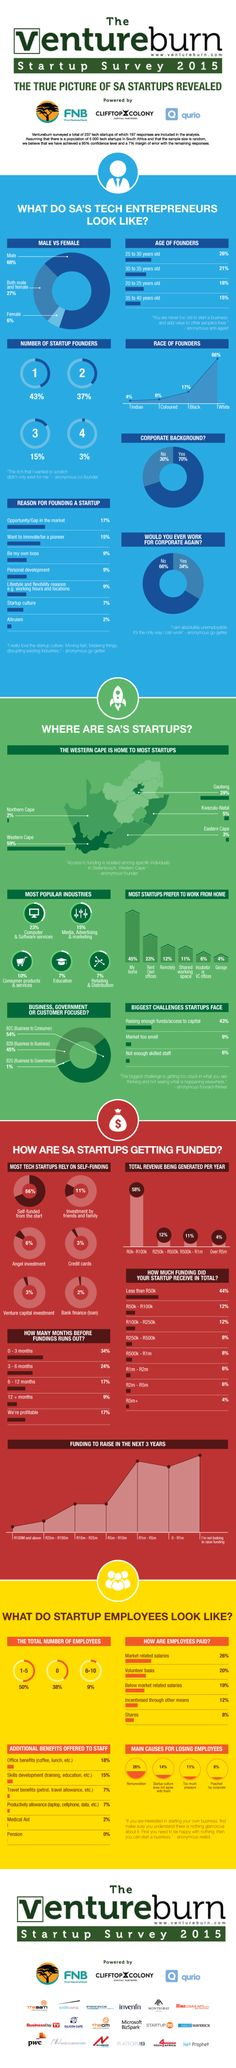 The True Picture of South Africa's Startups Revealed {Ventureburn Startup Survey 2015}